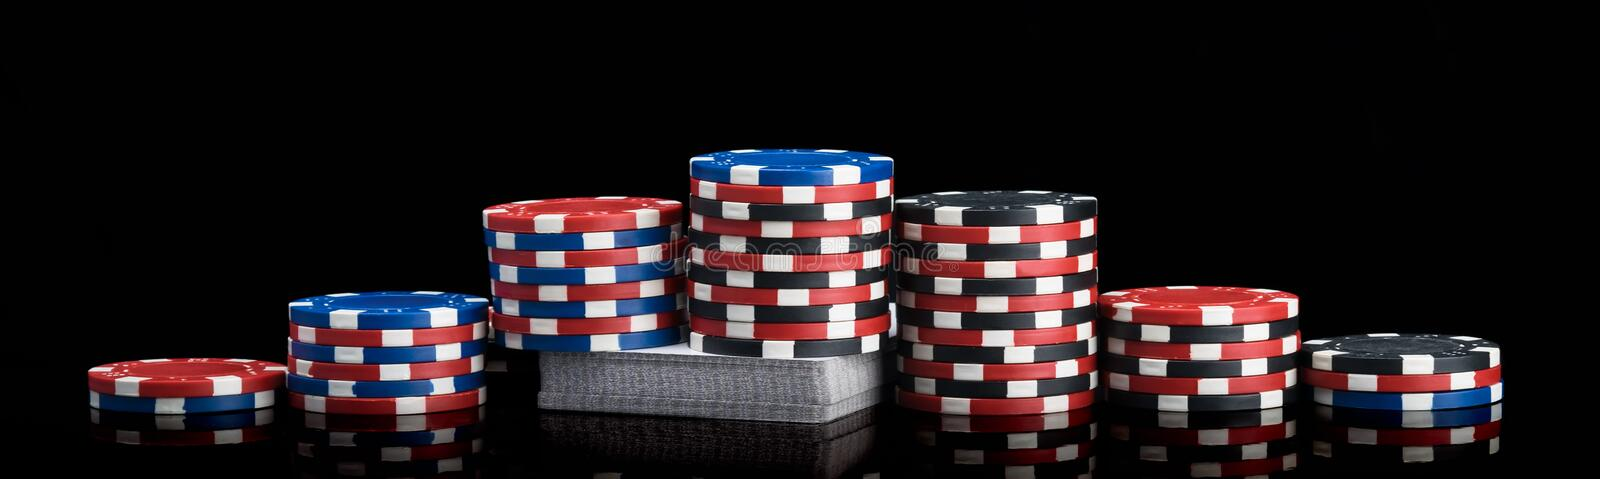 Colorful poker chips stand like a pyramid on a deck of cards on a black background. Colorful poker chips stand like  a pyramid on a deck of cards on a black stock image